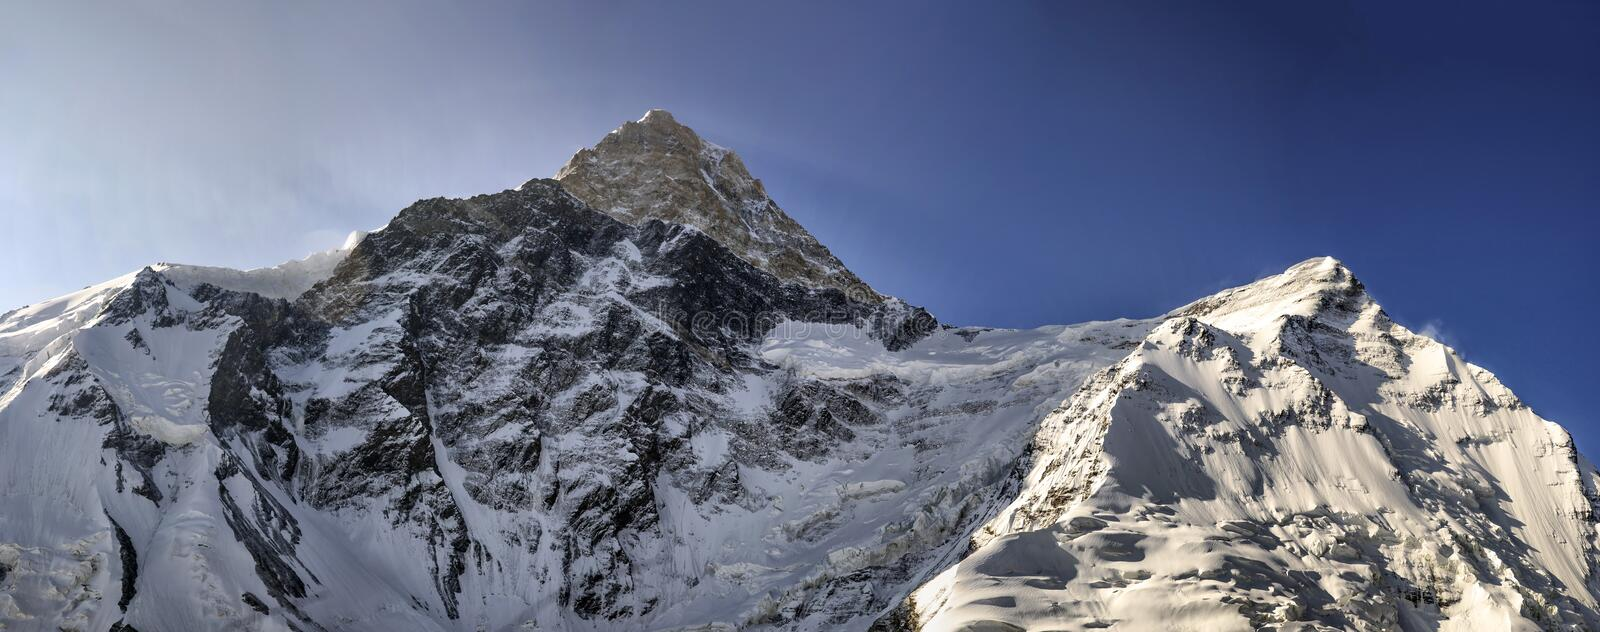 Glacier peak Khan-Tengri. Glacier peak Khan-Tengri in the mountains of Central Tien Shan royalty free stock image